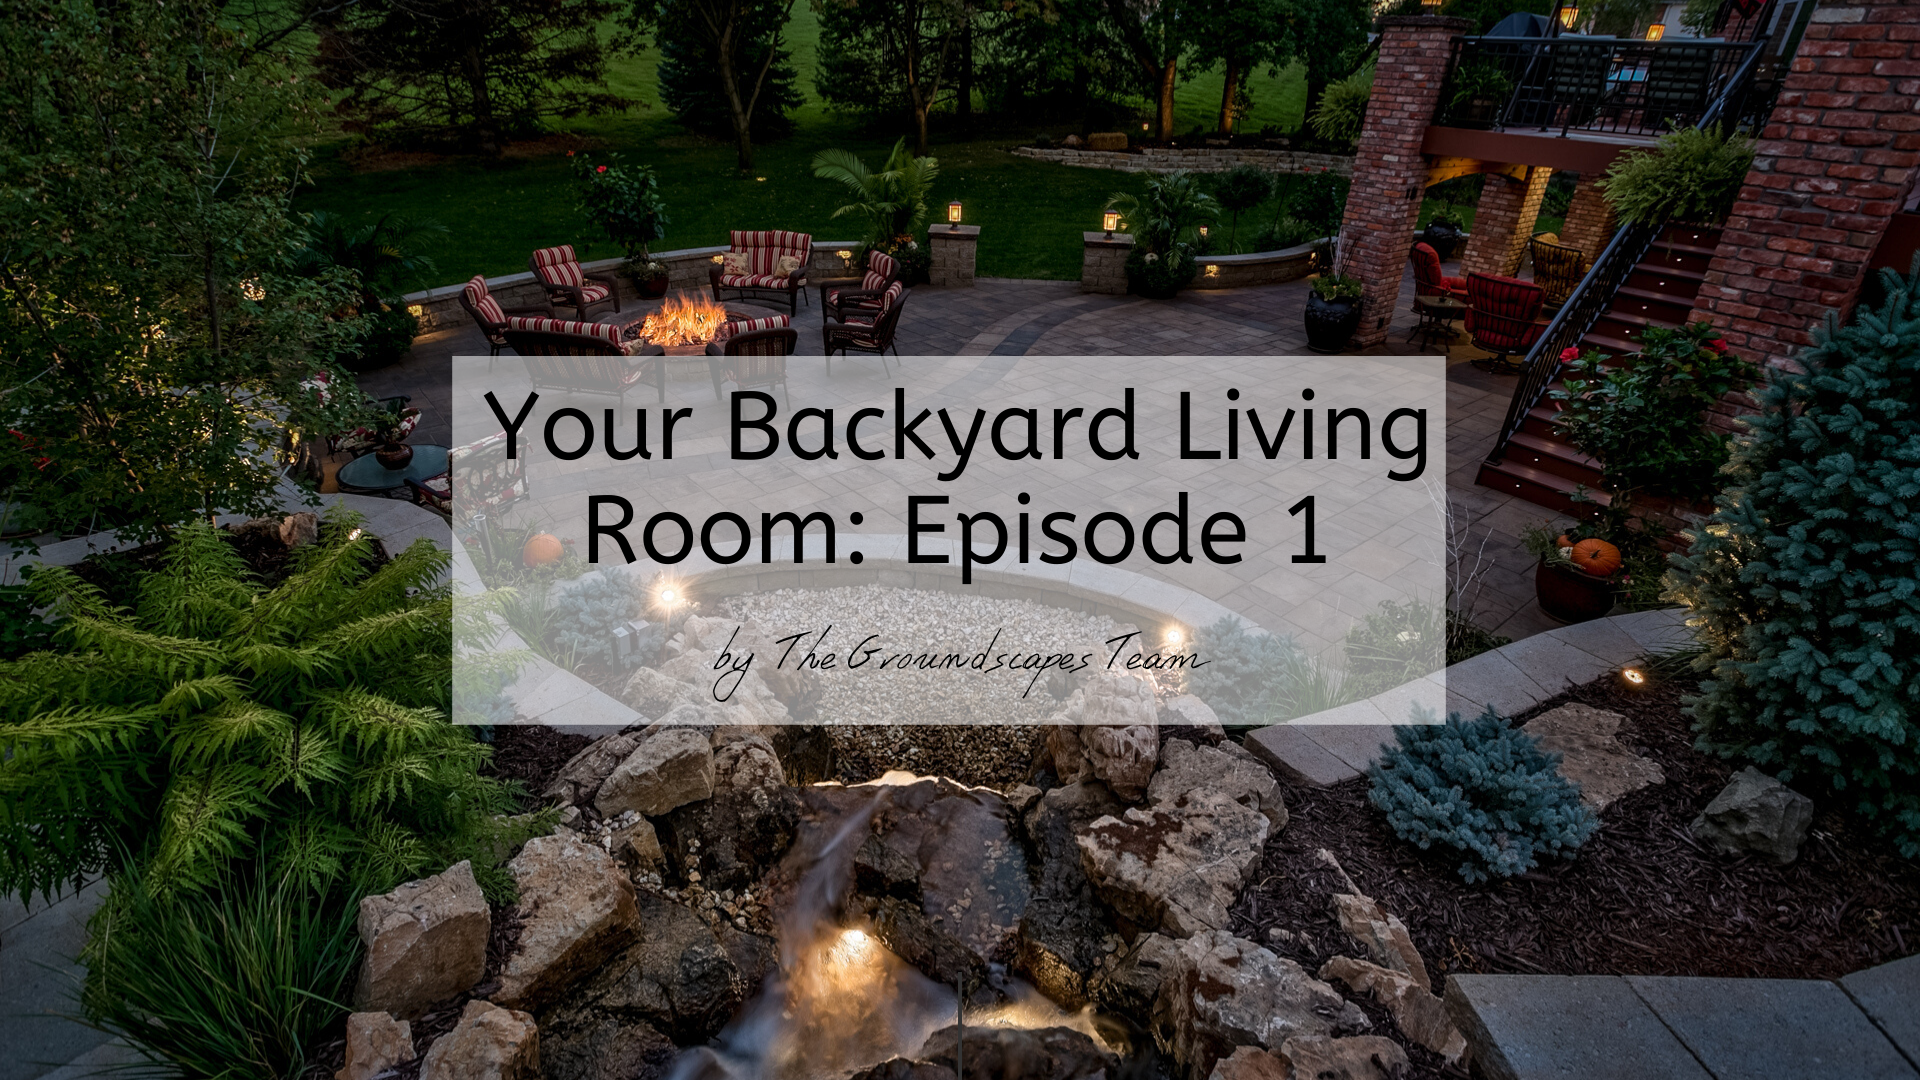 Your Backyard Living Room: Episode 1